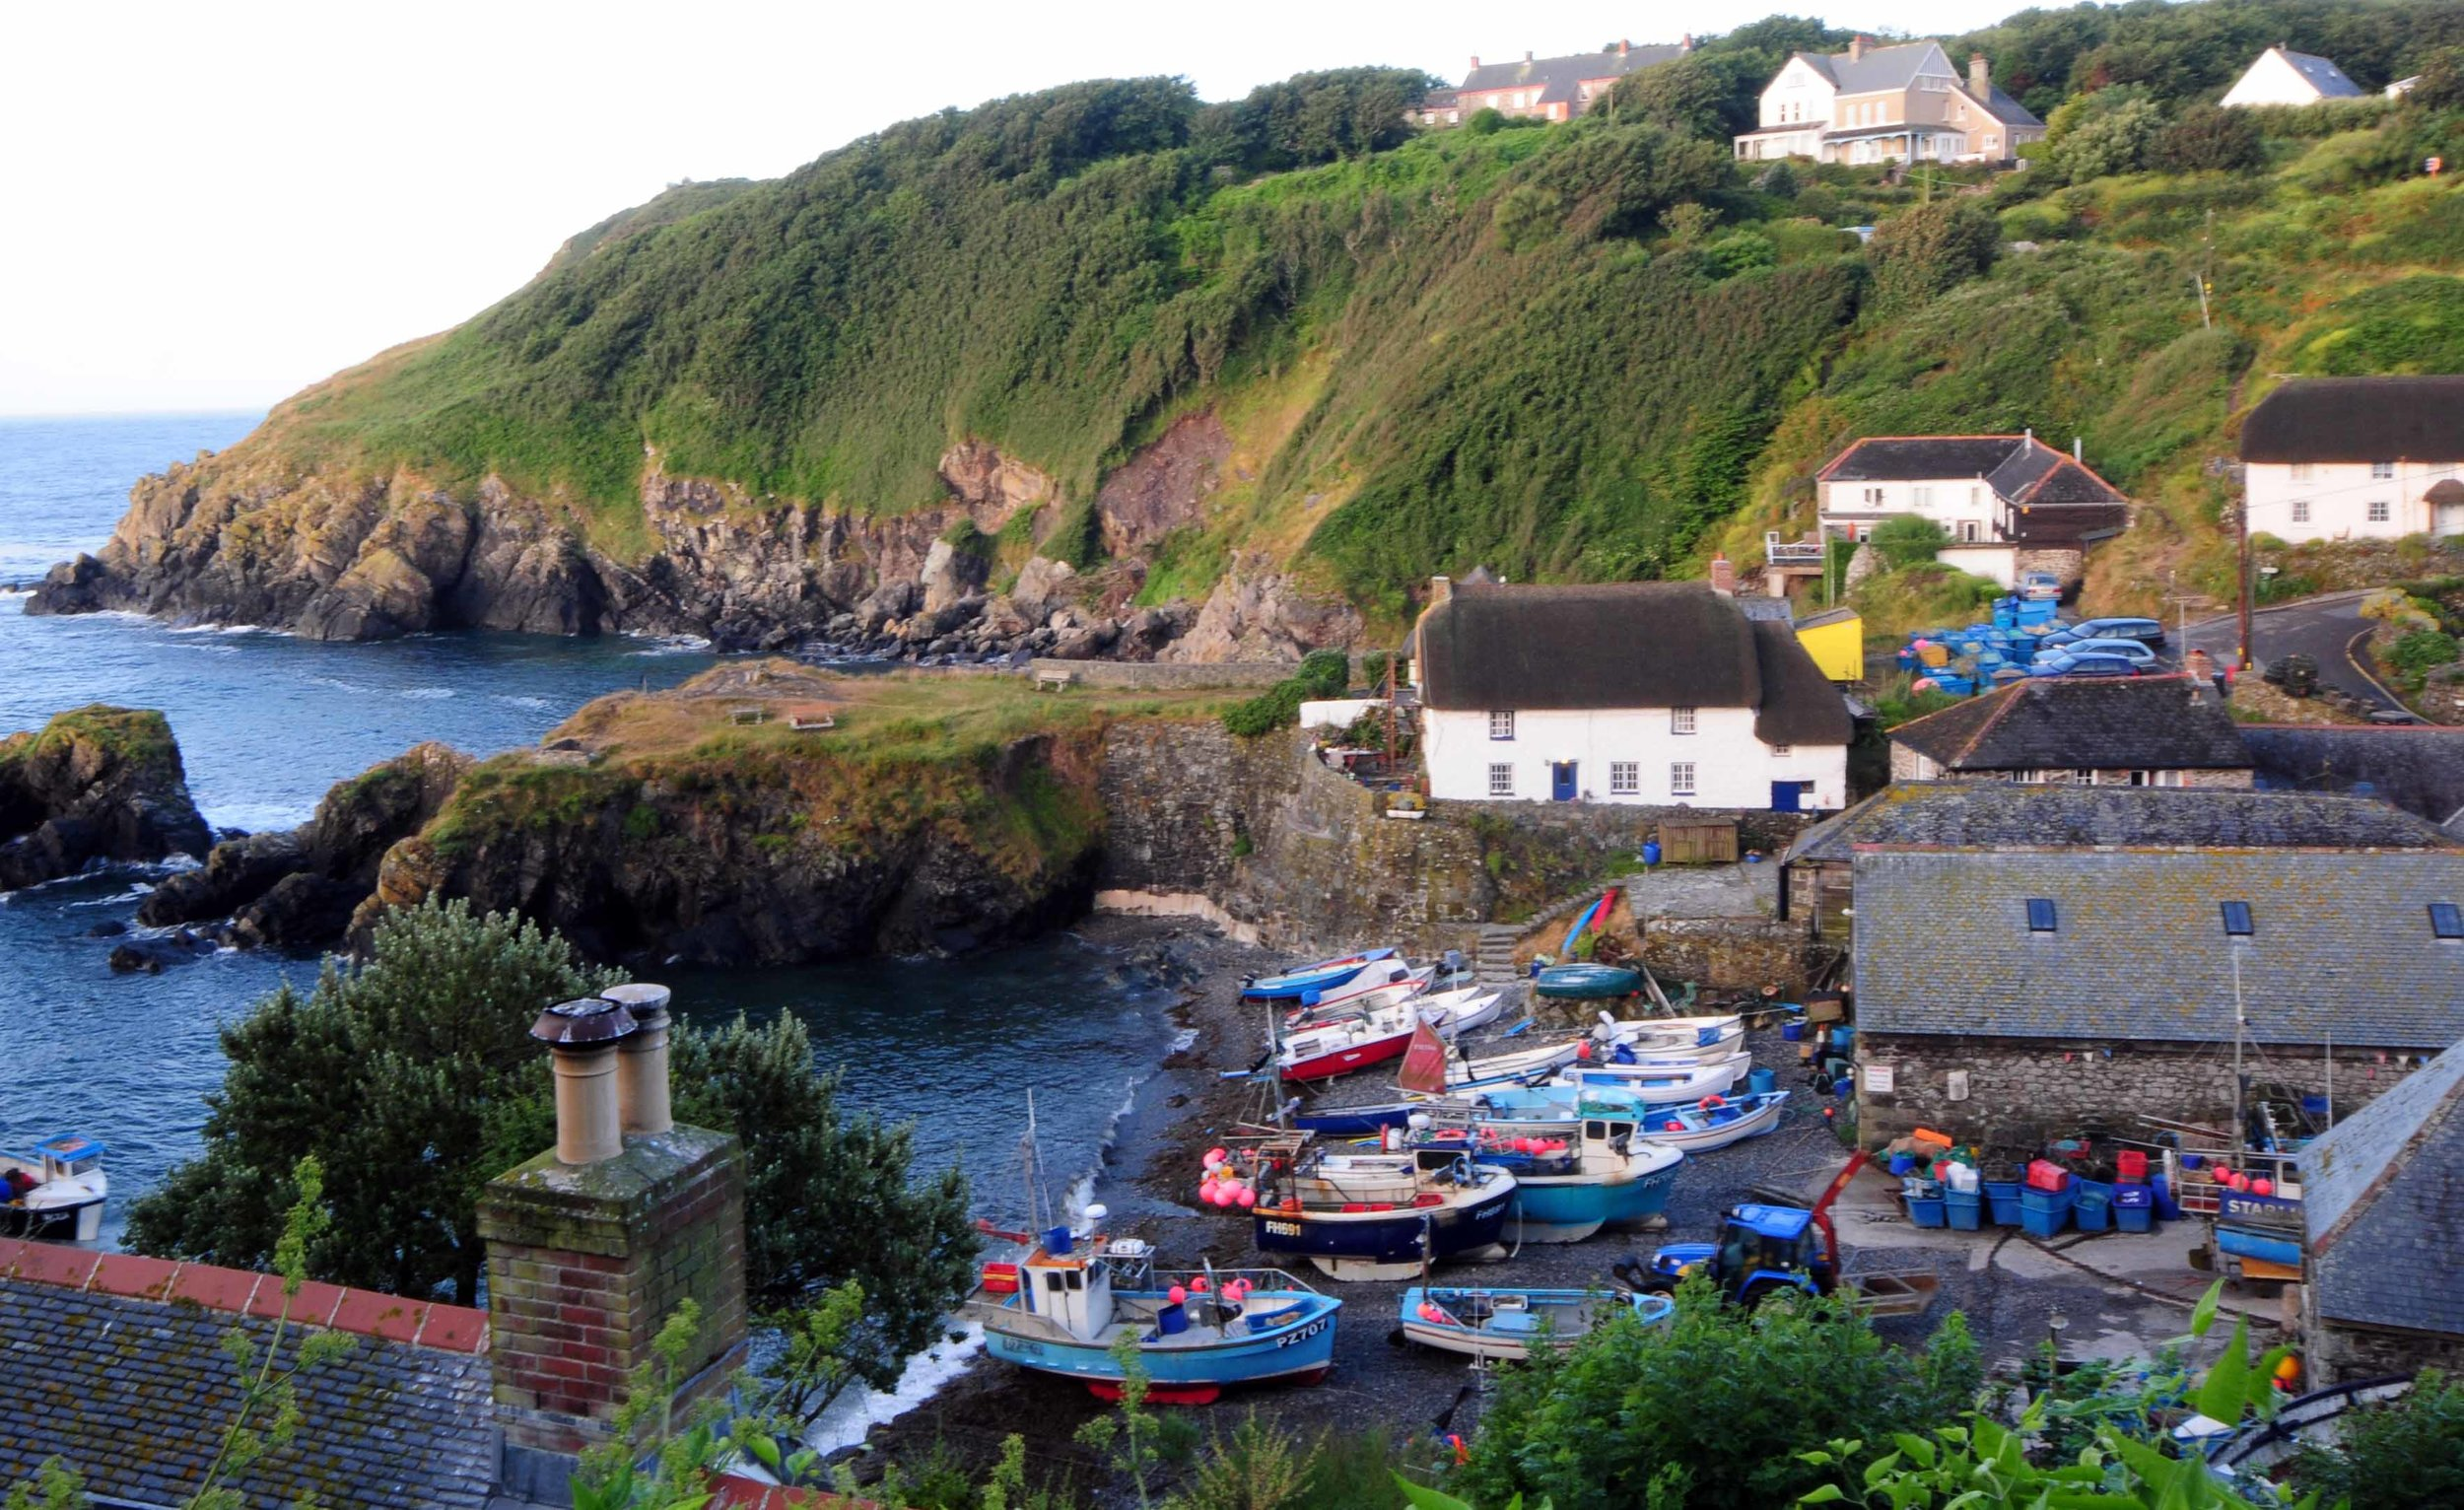 Overlooking Cadgwith copy.jpg